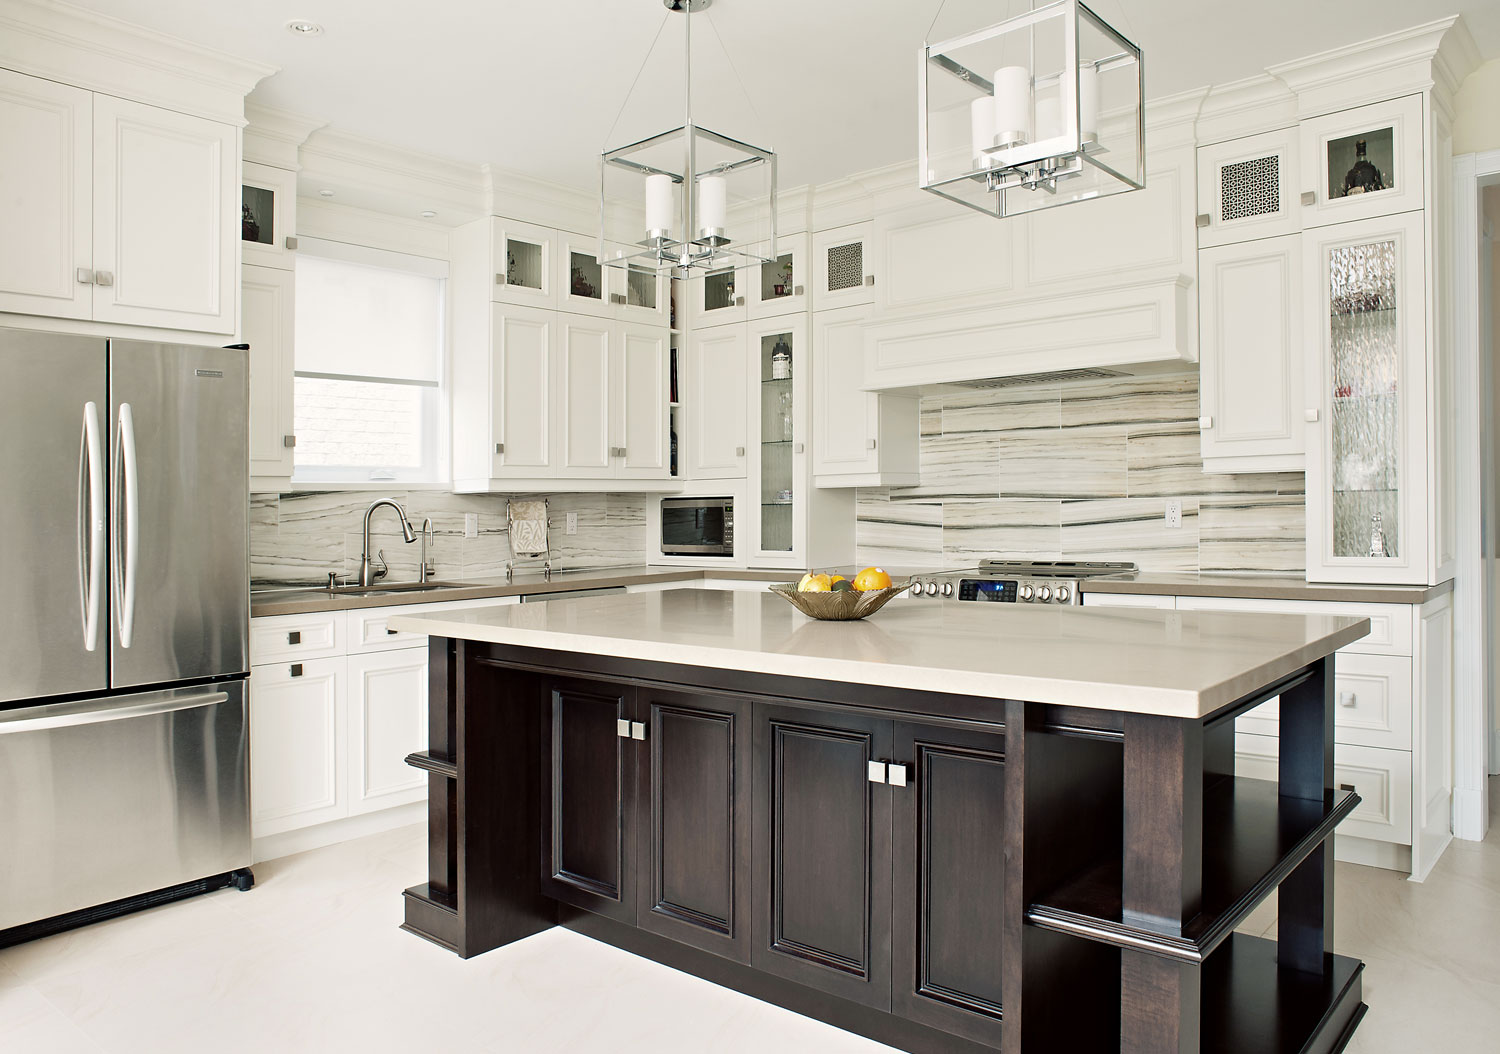 delaware vaughan custom kitchen and bathroom cabinetry kitchen remodeling full kitchen amp bath remodeling kitchen